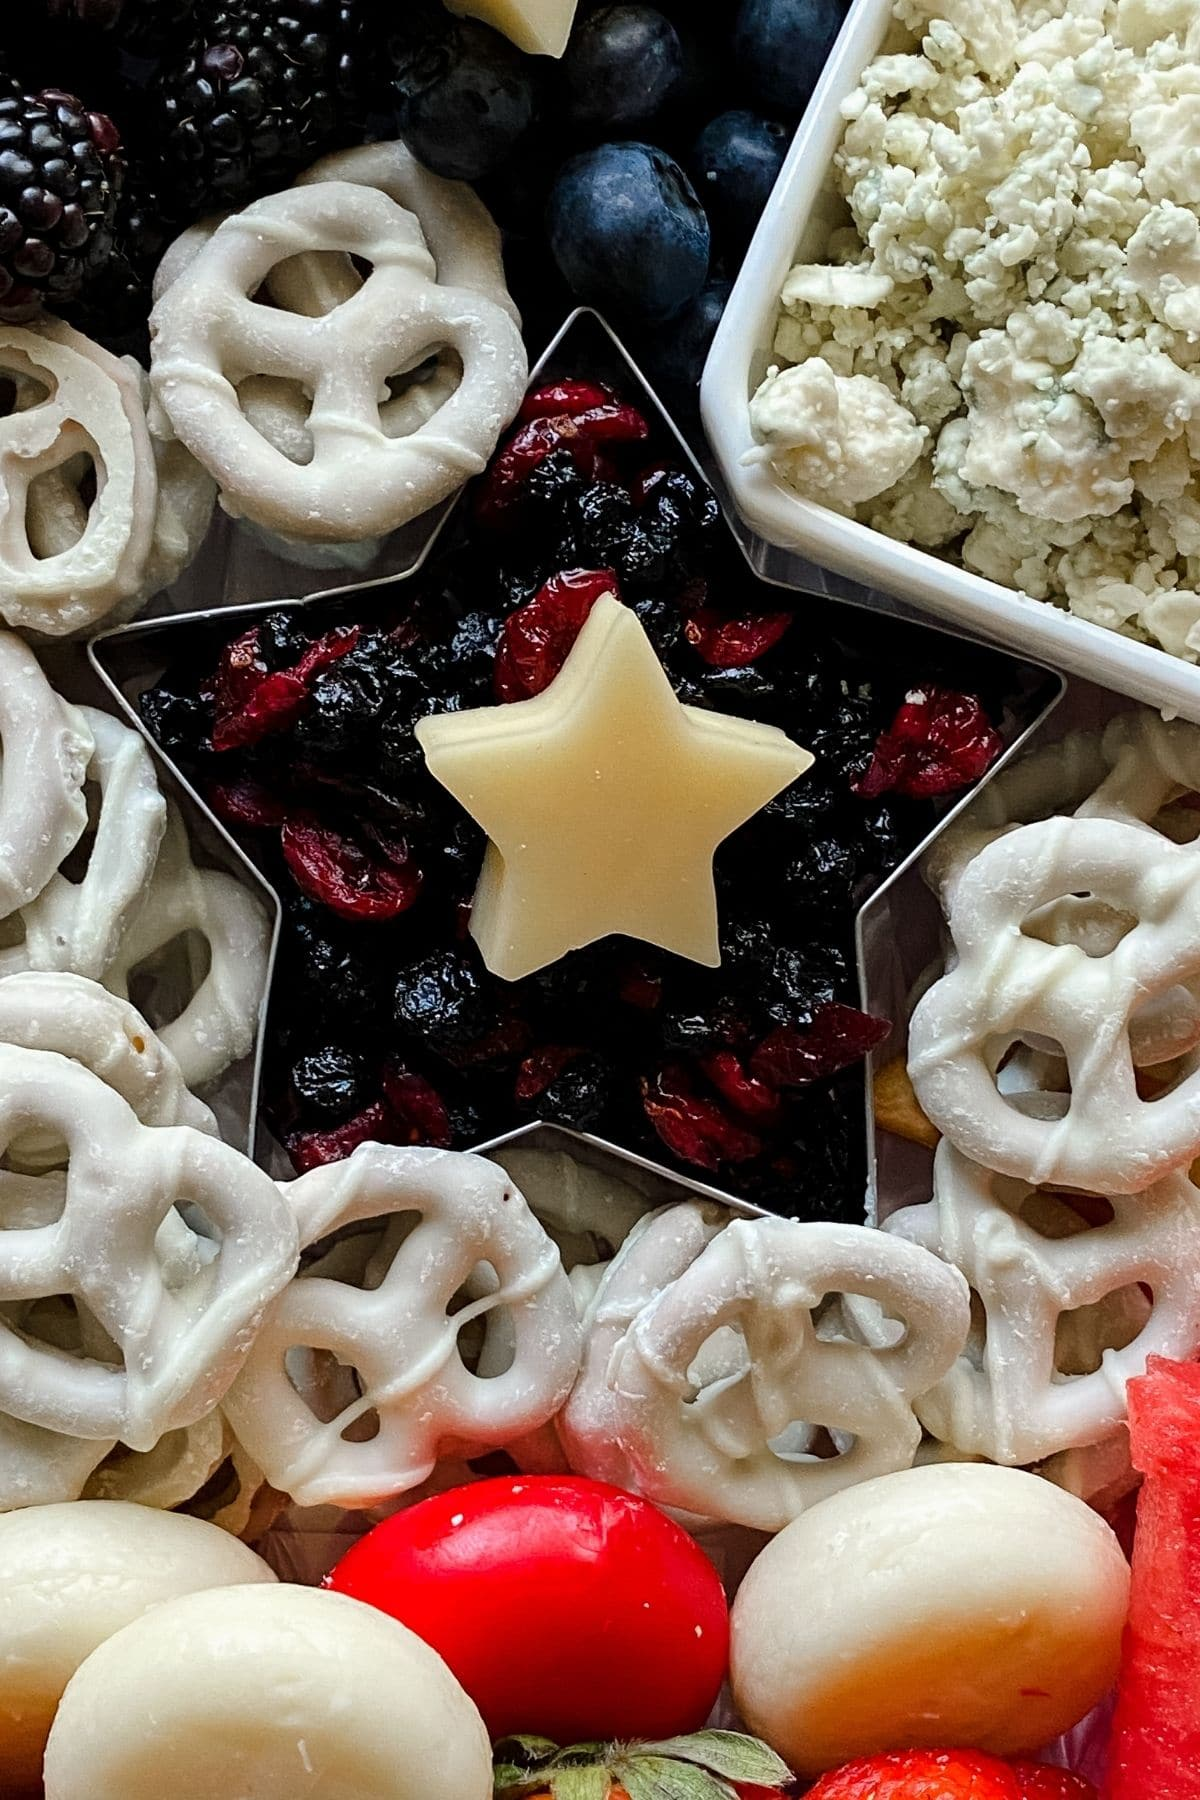 Star cookie cutter holding dried berries with cheese star on top